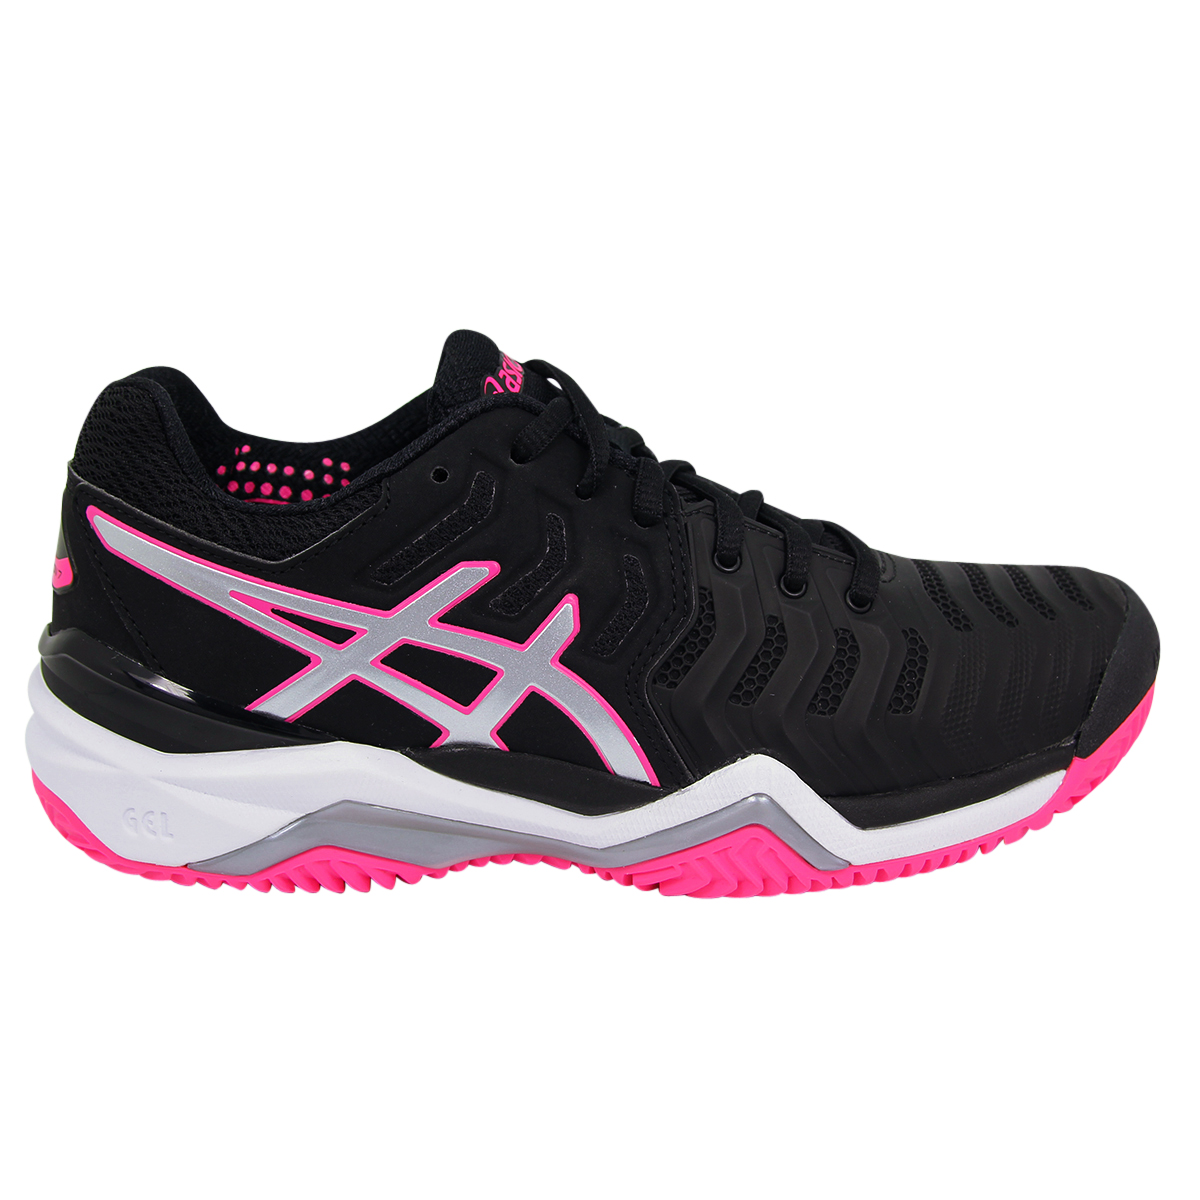 Details about Asics Gel Resolution 7 Clay Womens Tennis Shoes NEW- show  original title